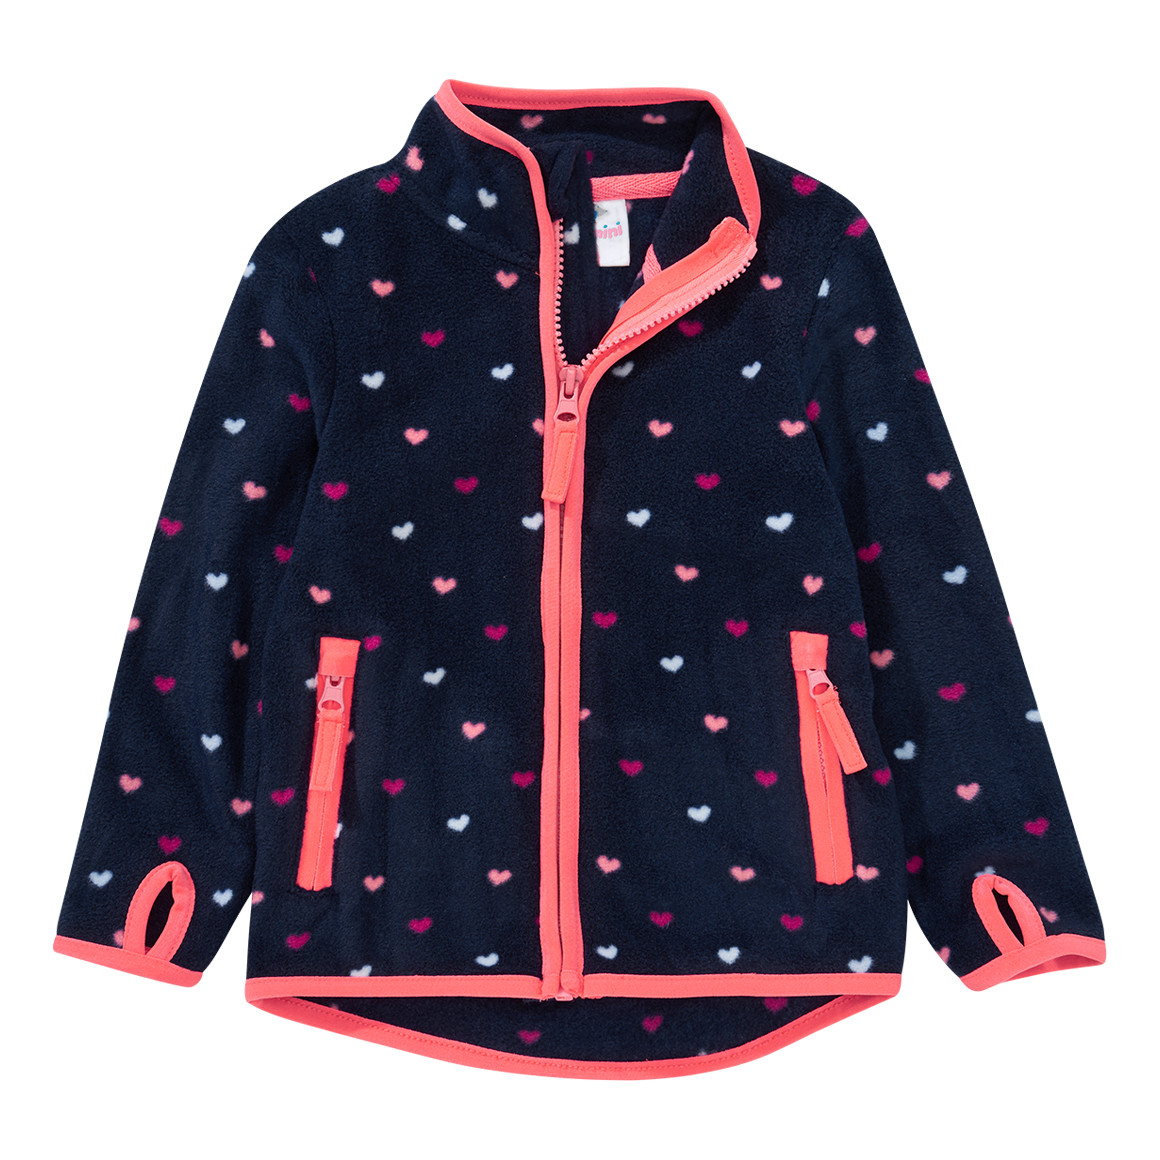 Baby Fleecejacke mit Herz Allover